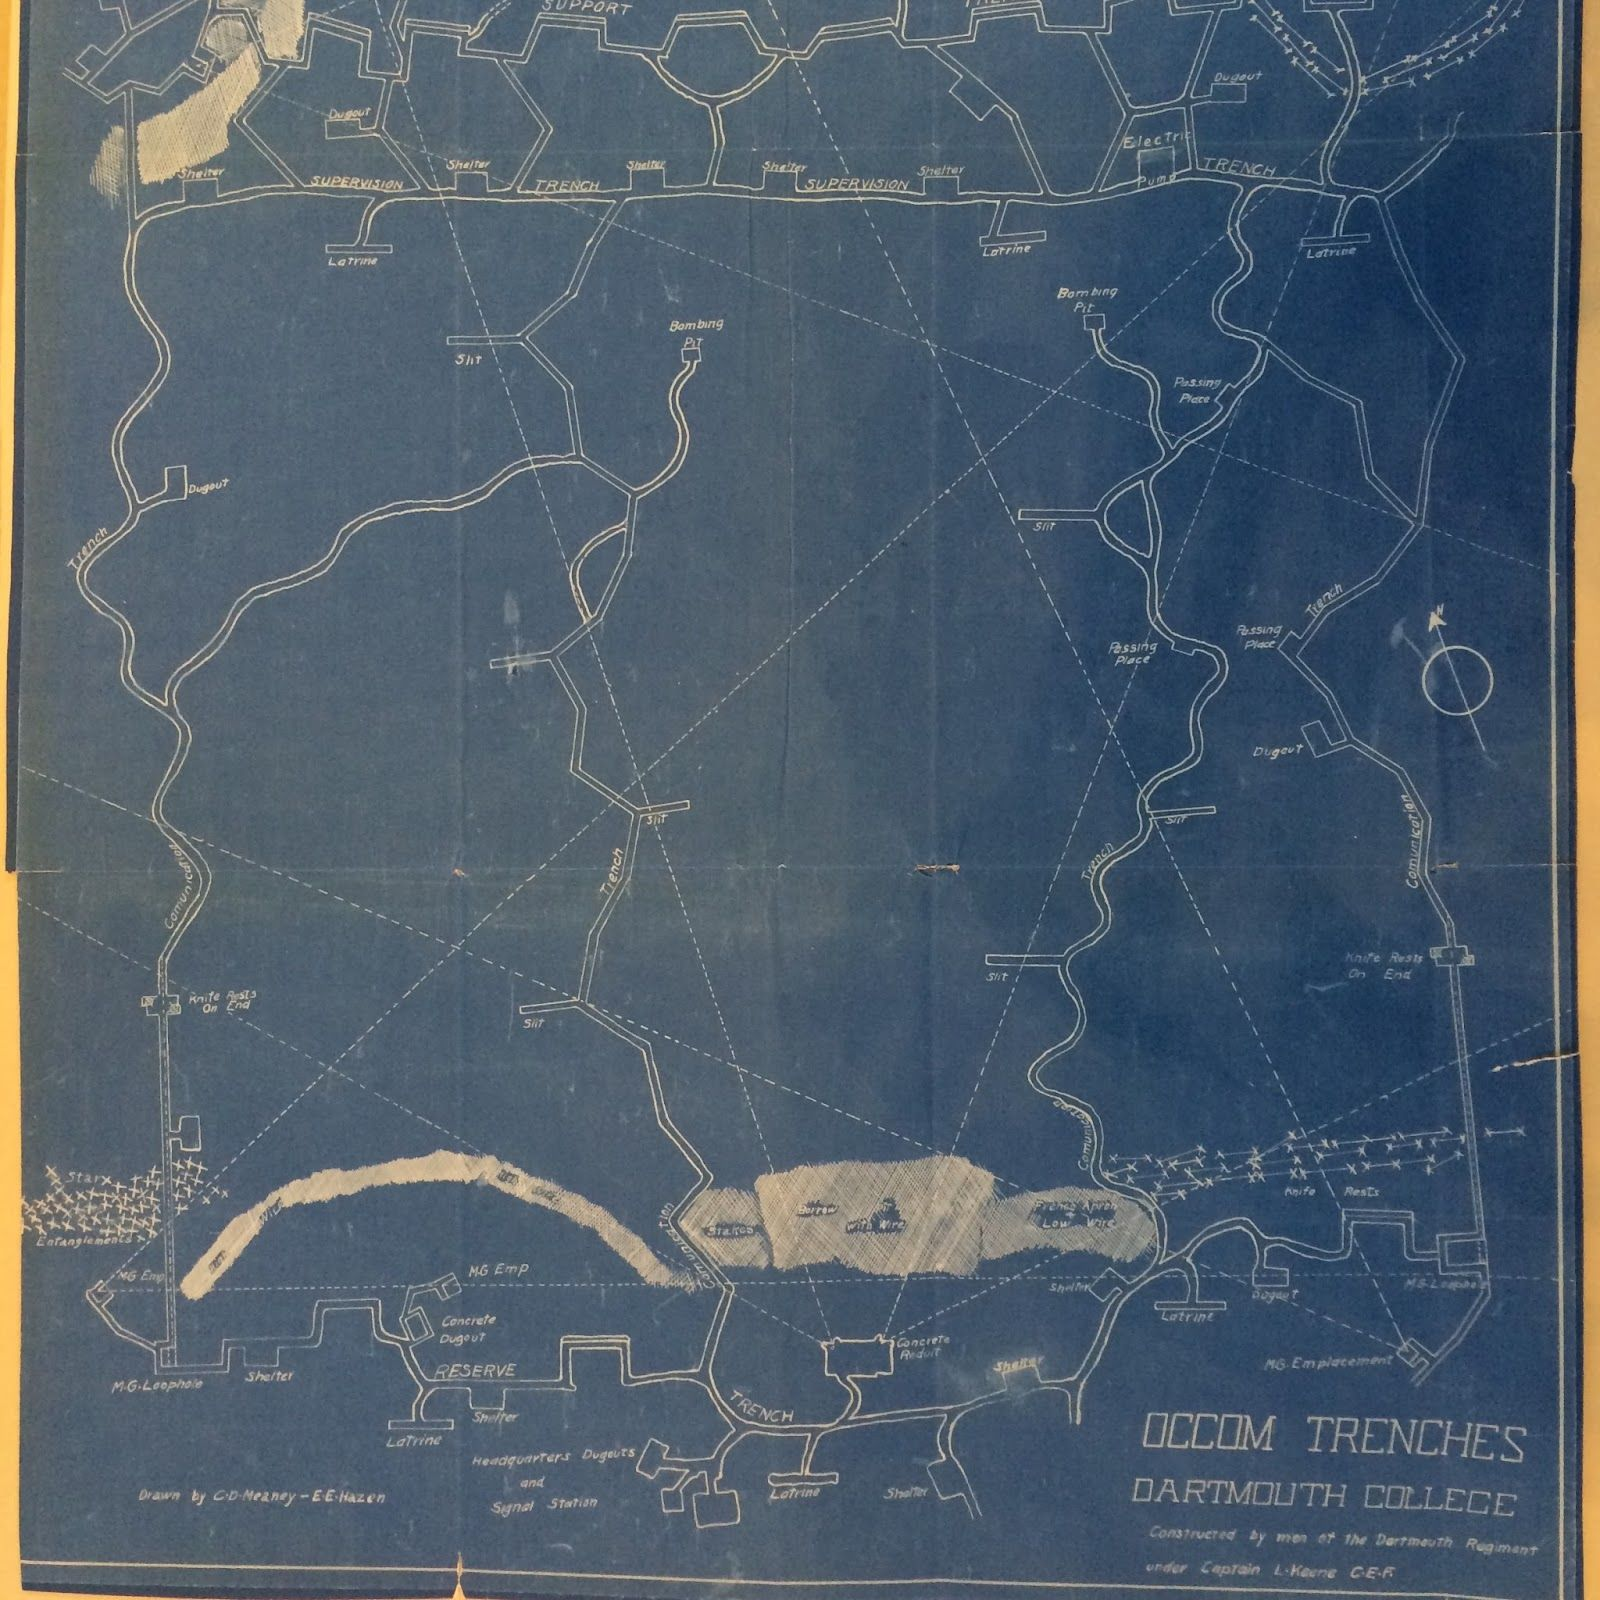 map of fake trenches dug for training purposes at Dartmouth College